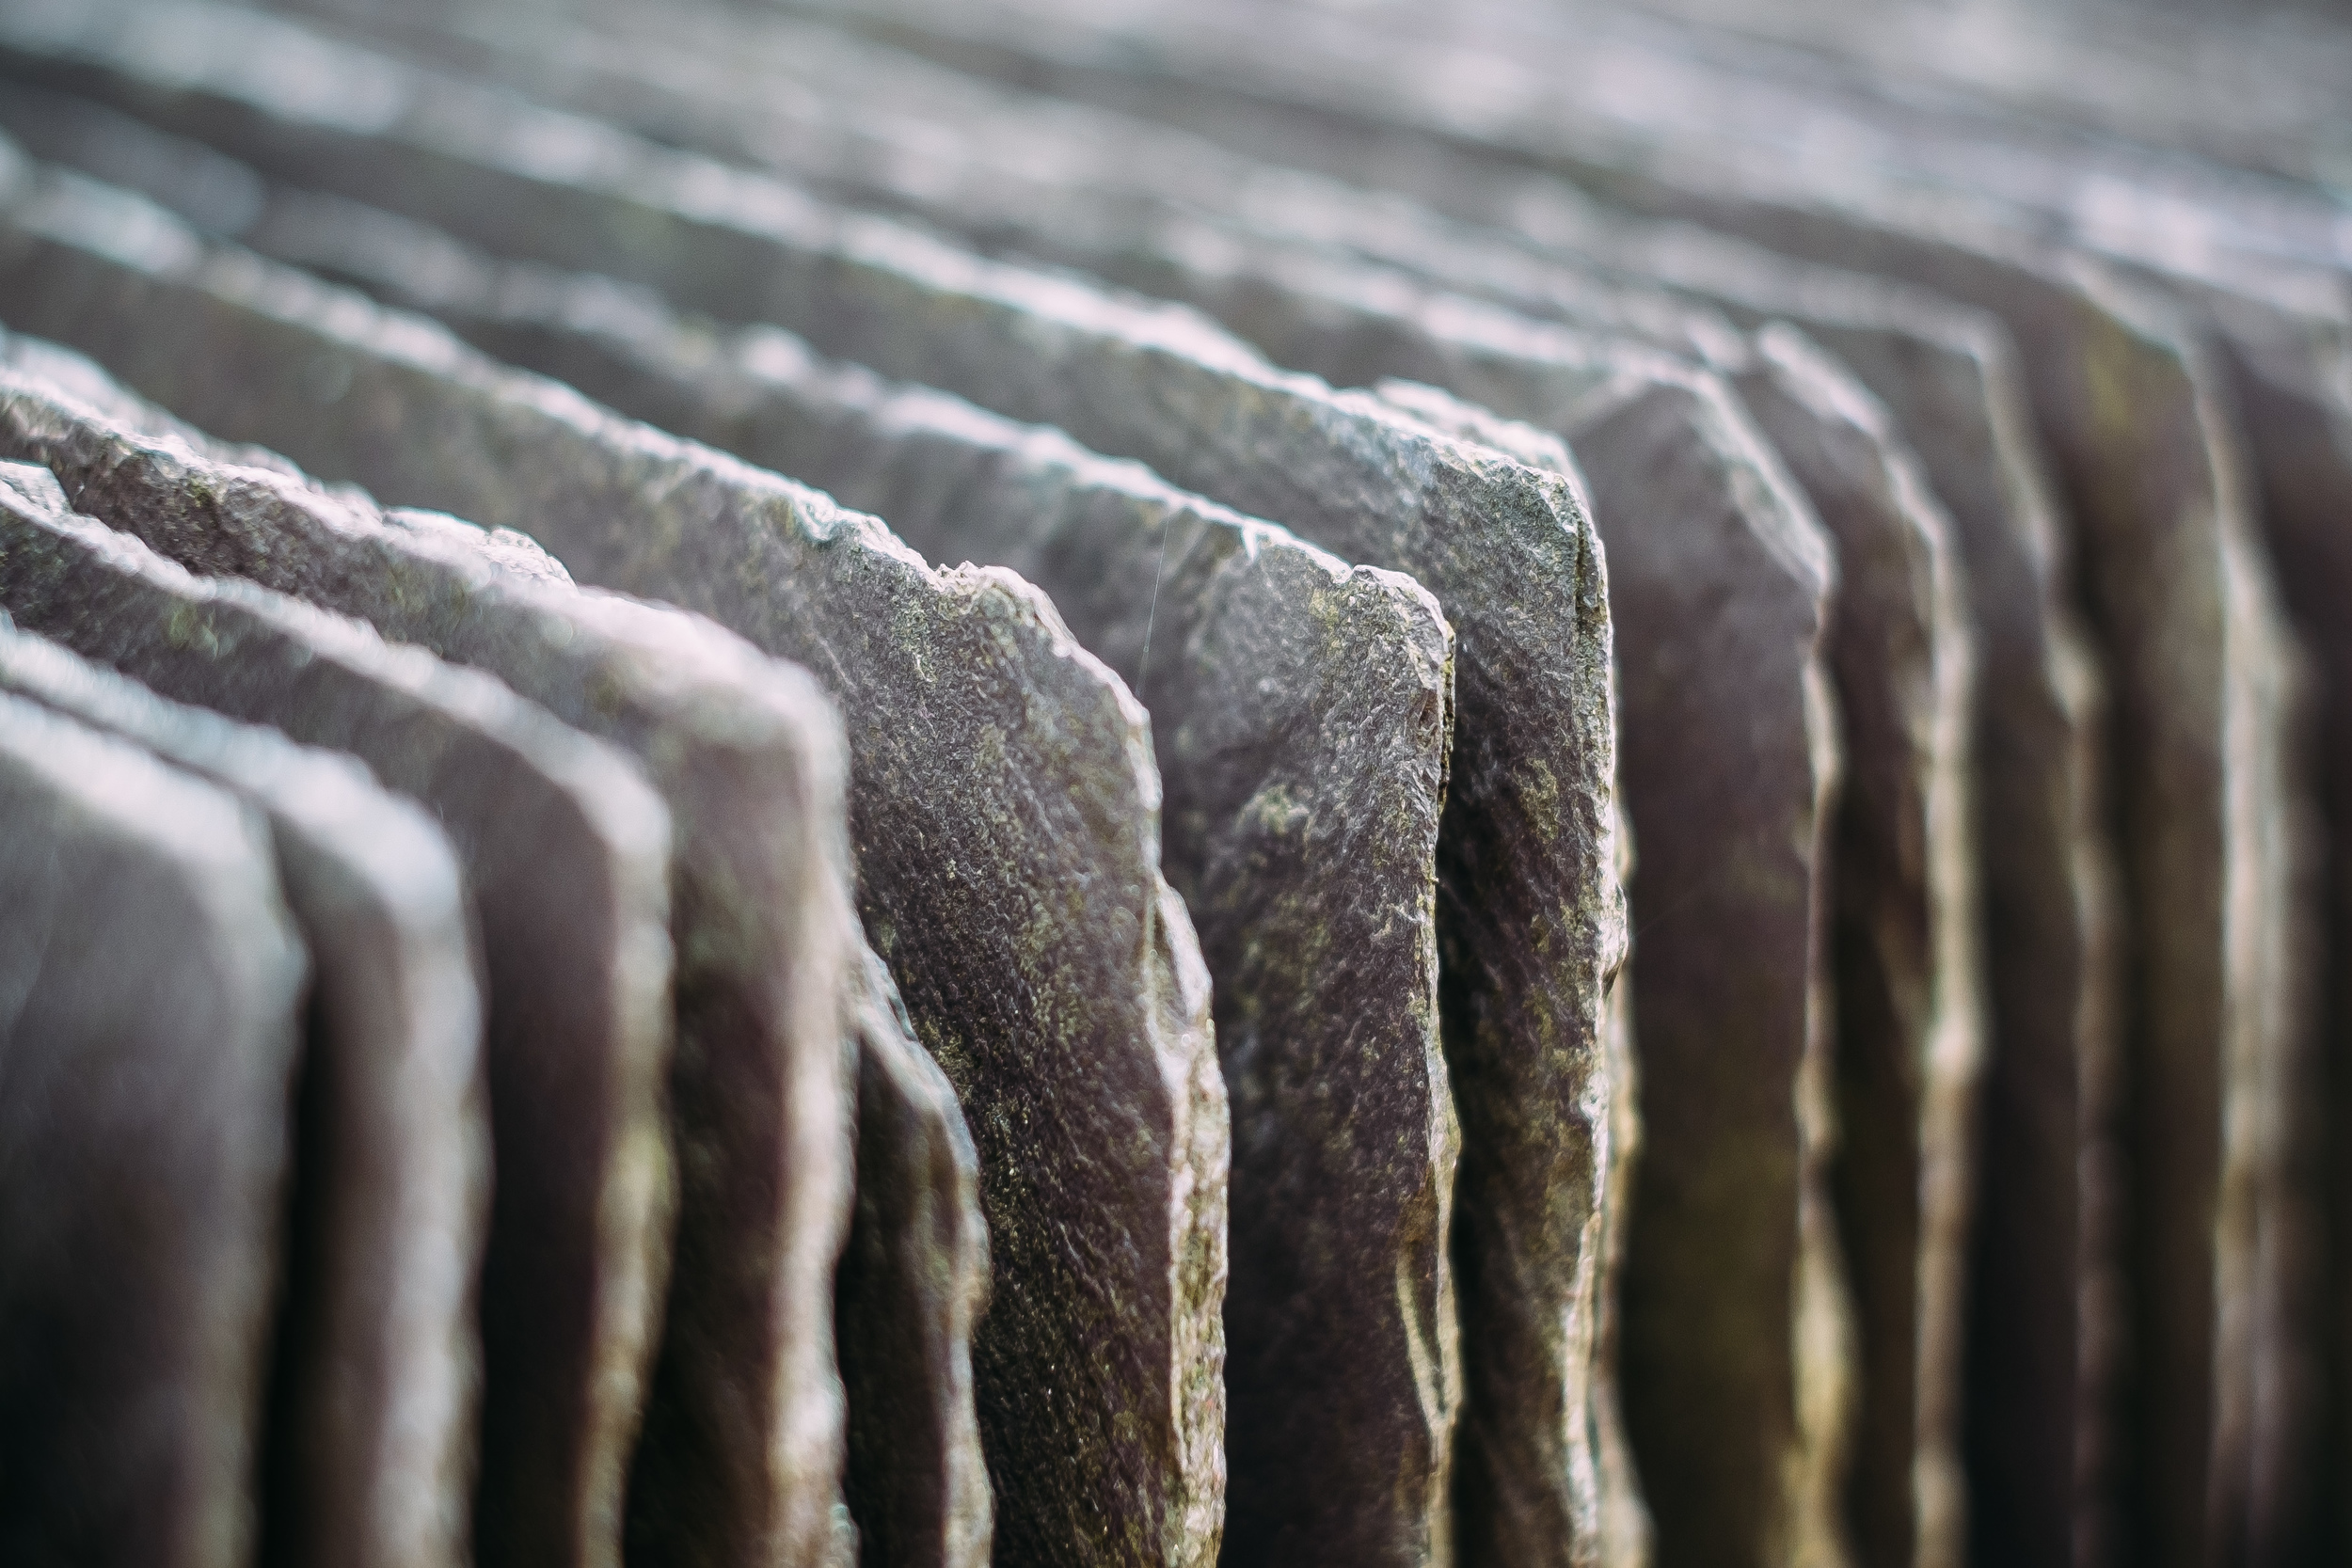 Stacks of slate at the National Slate Museum. X-Pro1 + XF 35mm f/1.4 @ f/2.2. ISO200. 1/110.